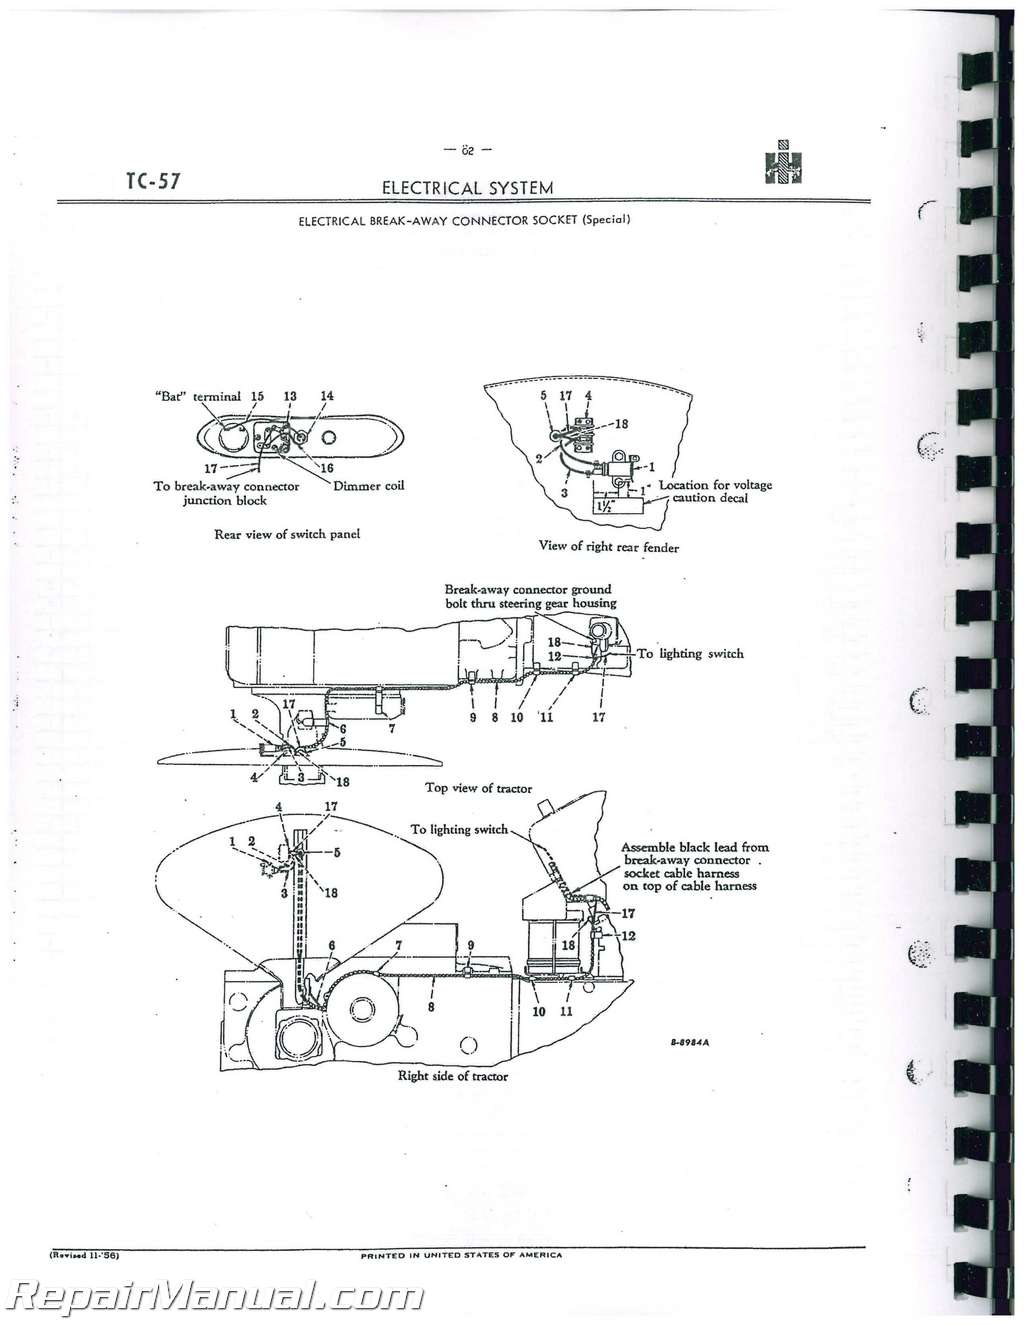 farmall 300 utility wiring diagram international harvester farmall manuals parts service